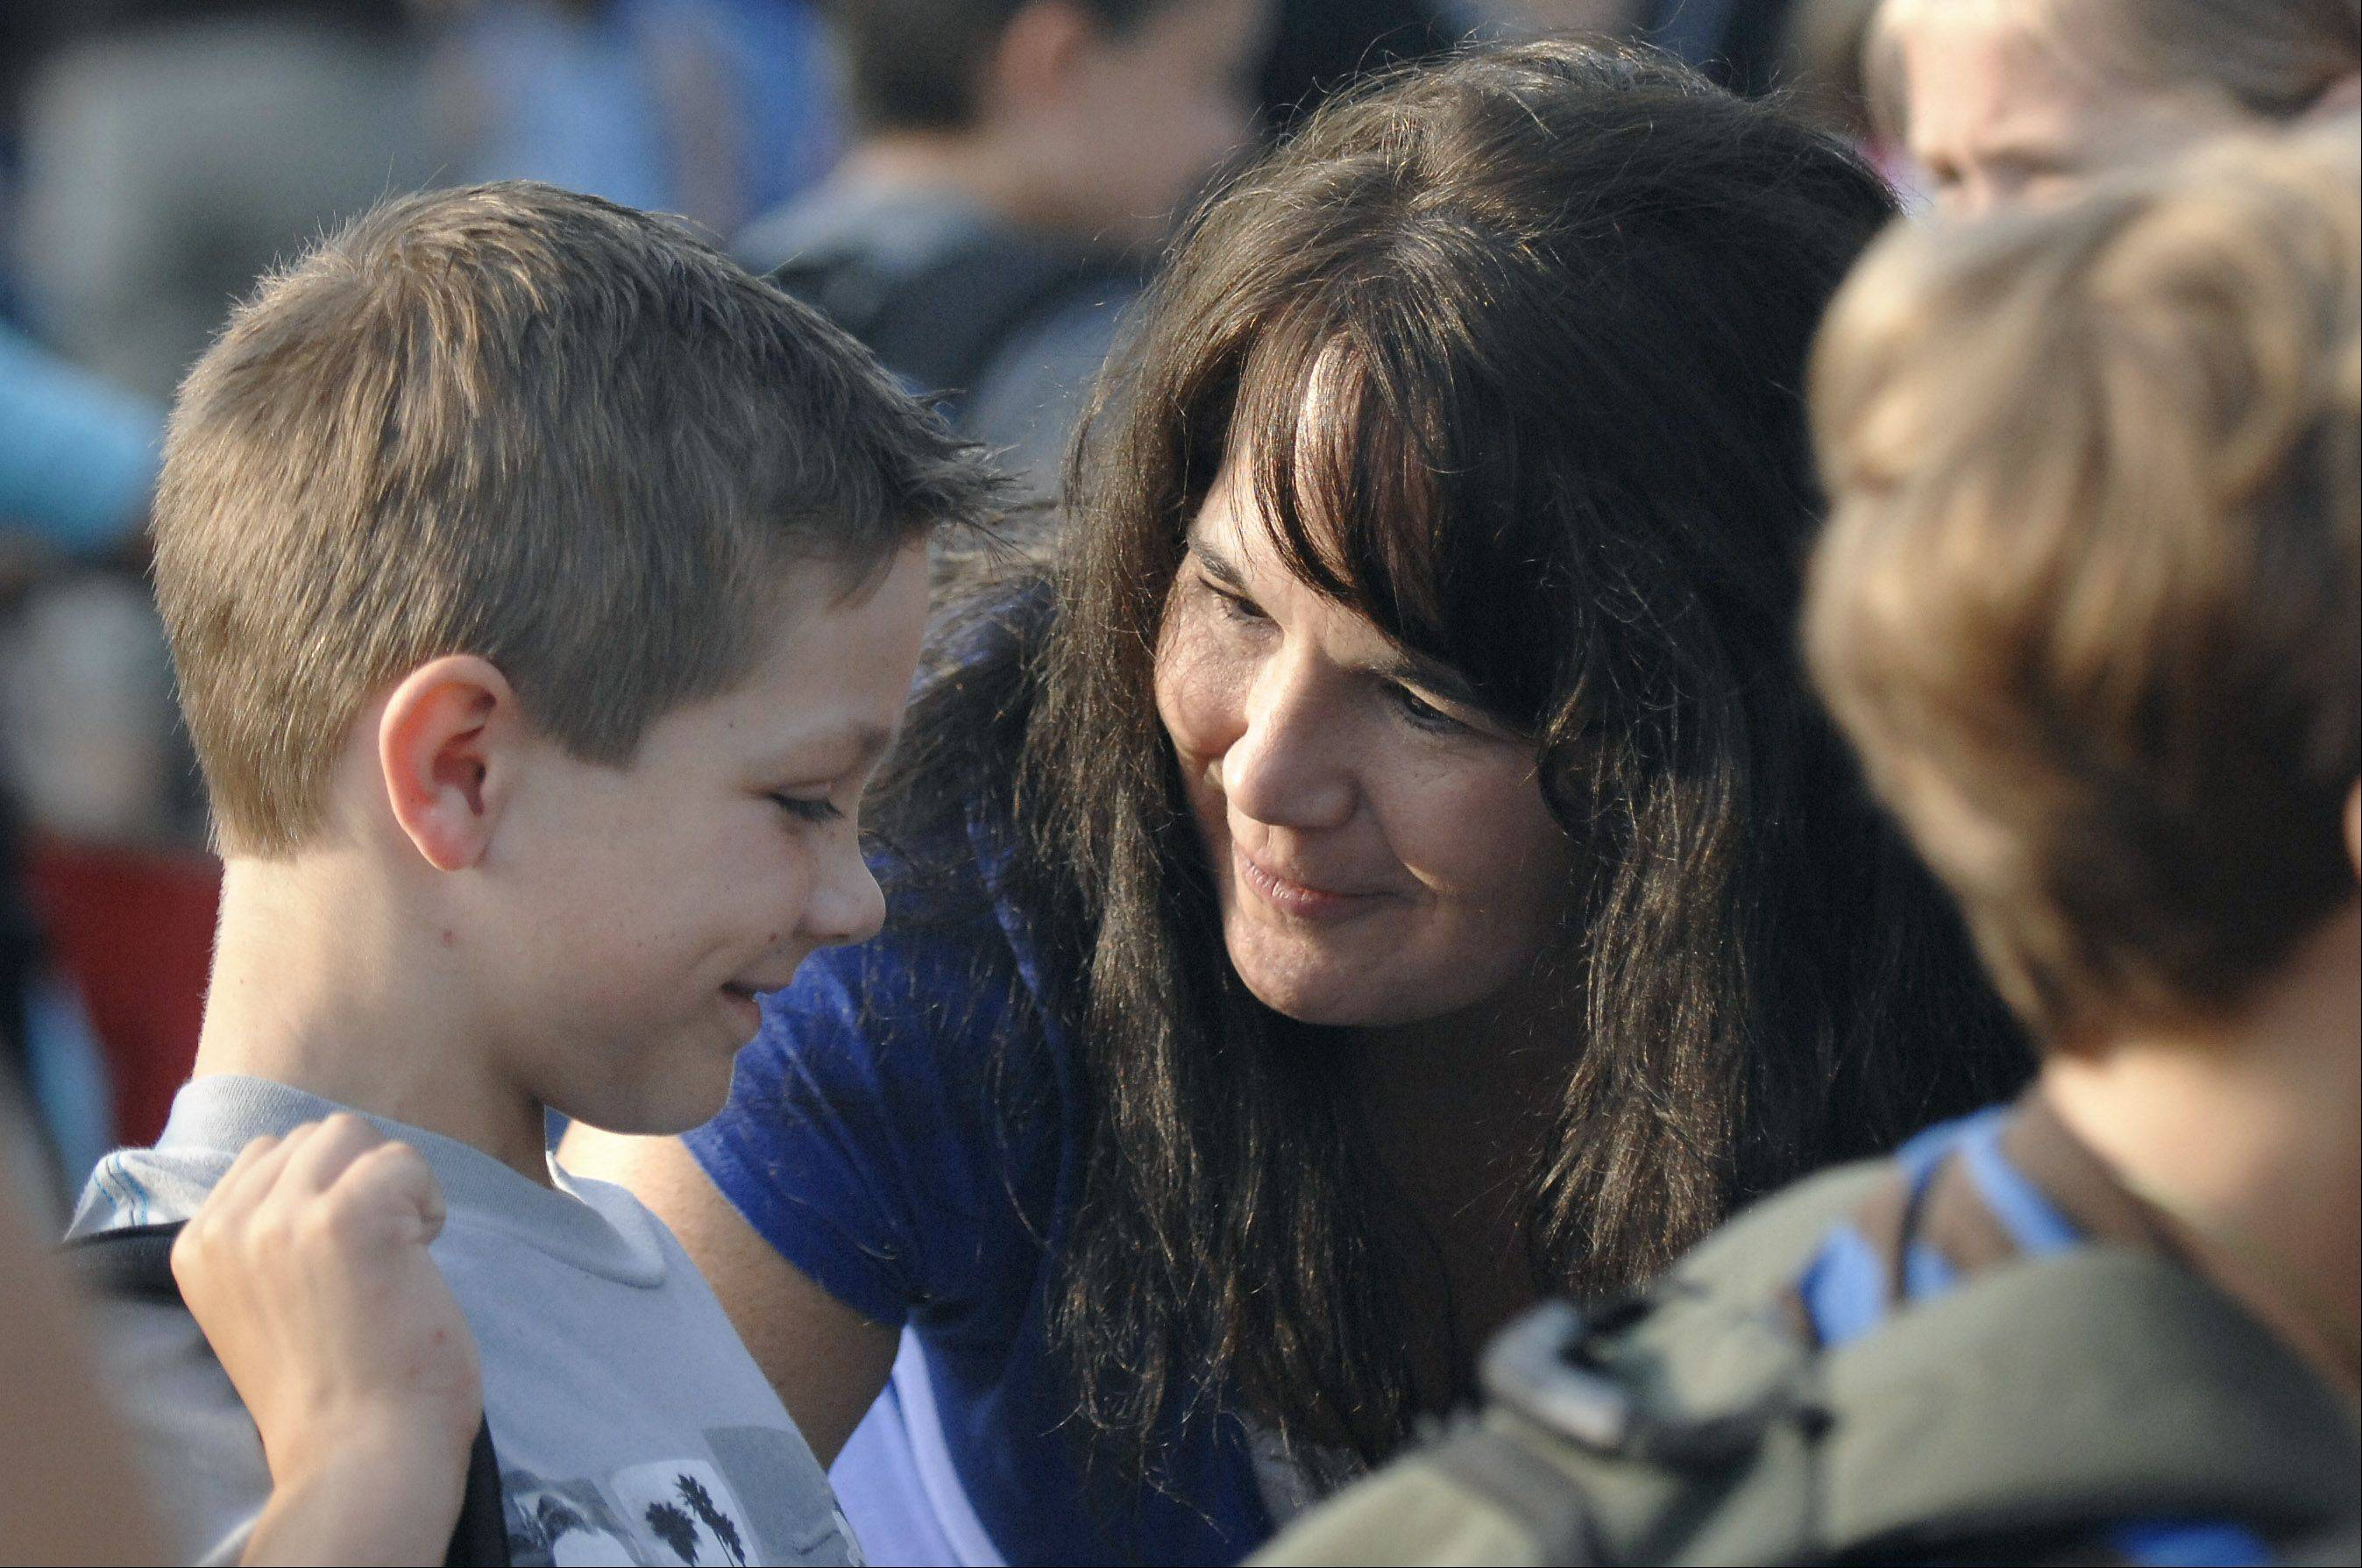 Kim Jacobsen says goodbye to her son, Evan, 9, before he starts his first day of fourth grade at Williamsburg Elementary on Wednesday. Jacobsen said she could tell he was a little bit nervous but also excited as he has several good friends in his class.